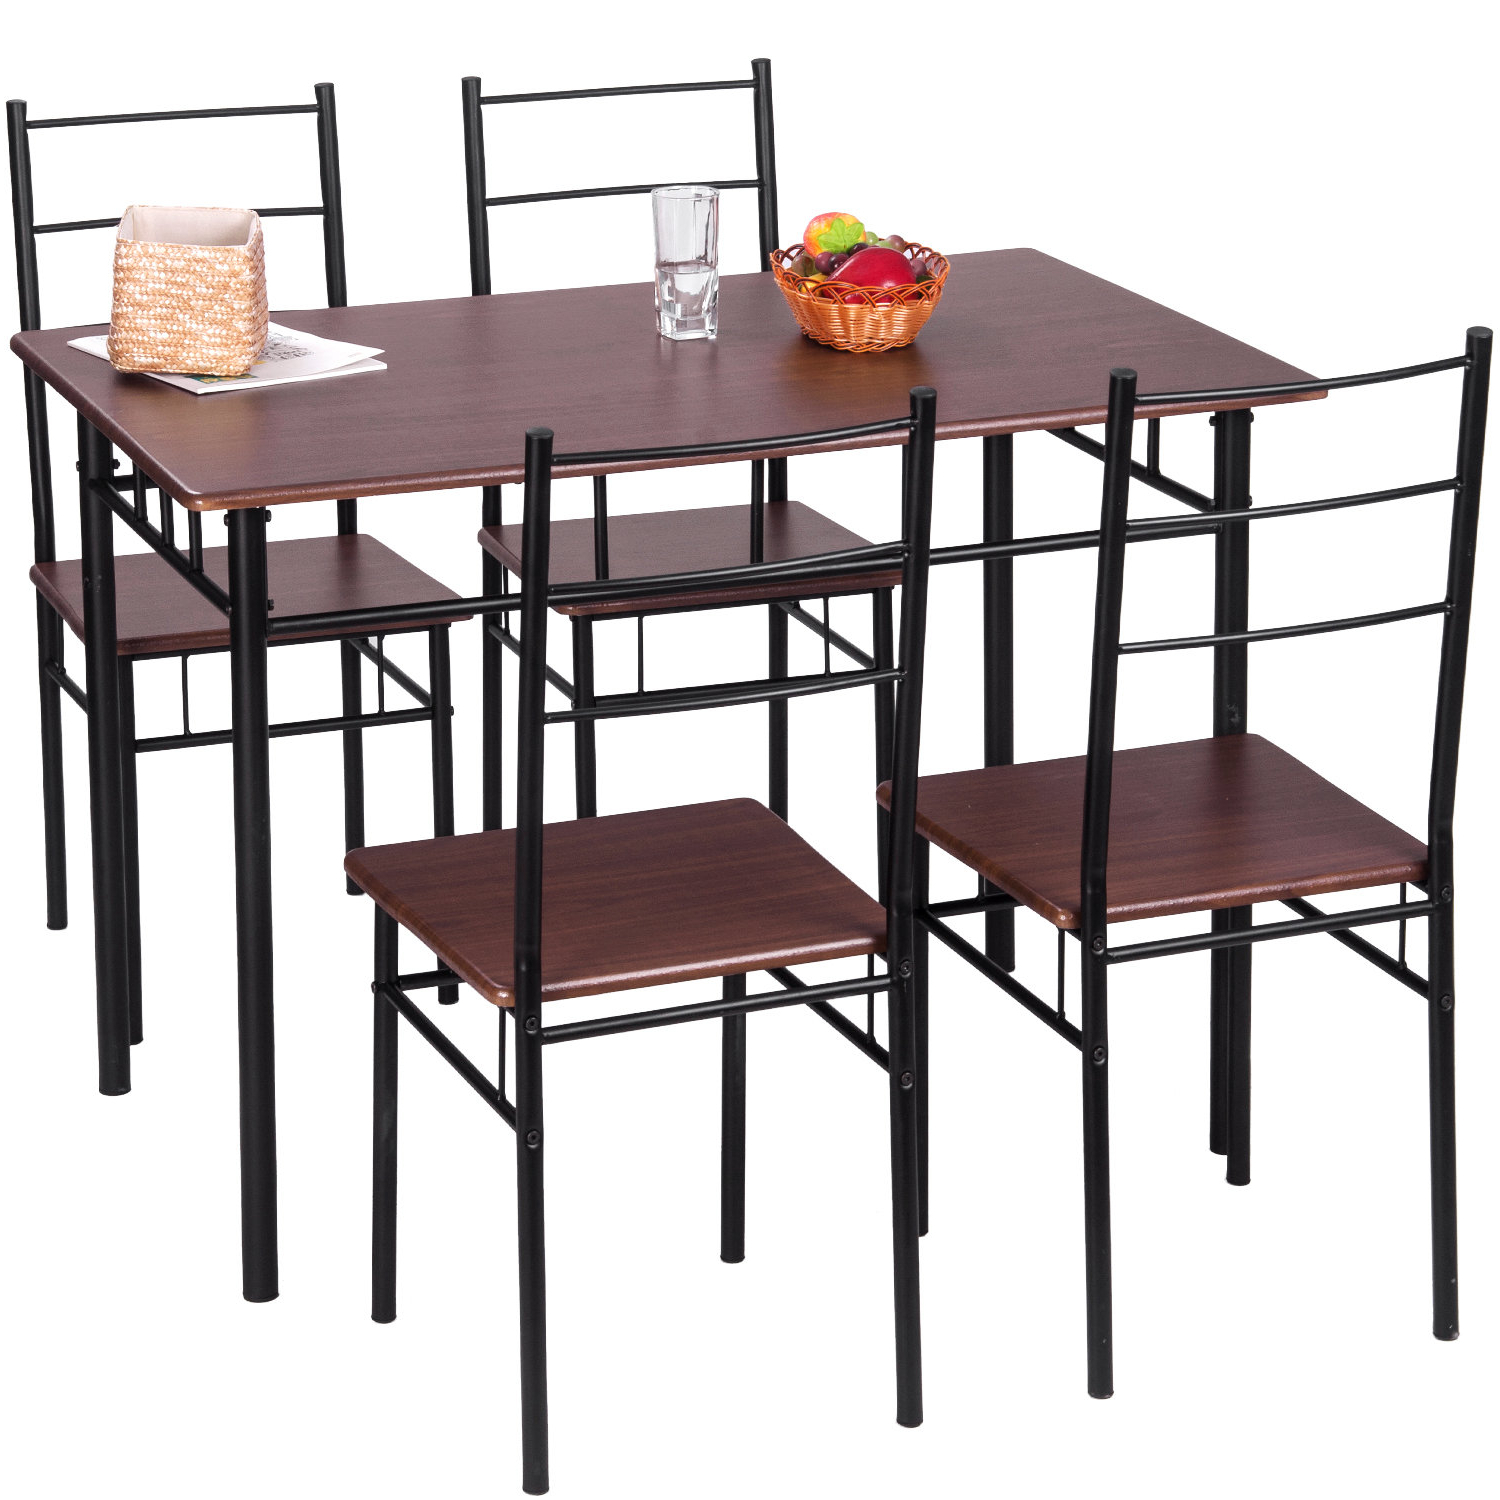 Popular Ephraim 5 Piece Dining Sets Intended For 5 Piece Breakfast Nook Dining Set (View 18 of 20)